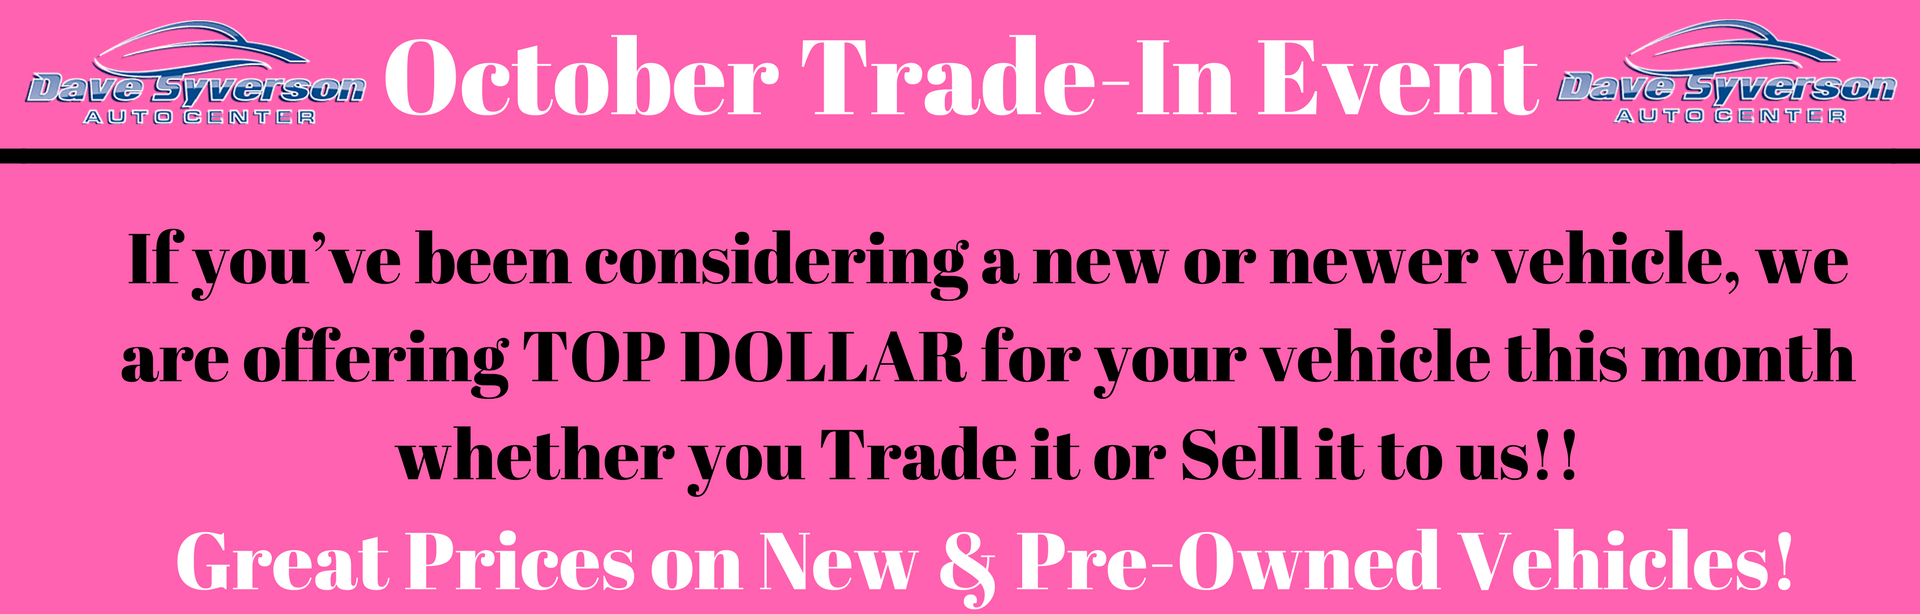 October Trade-In Event